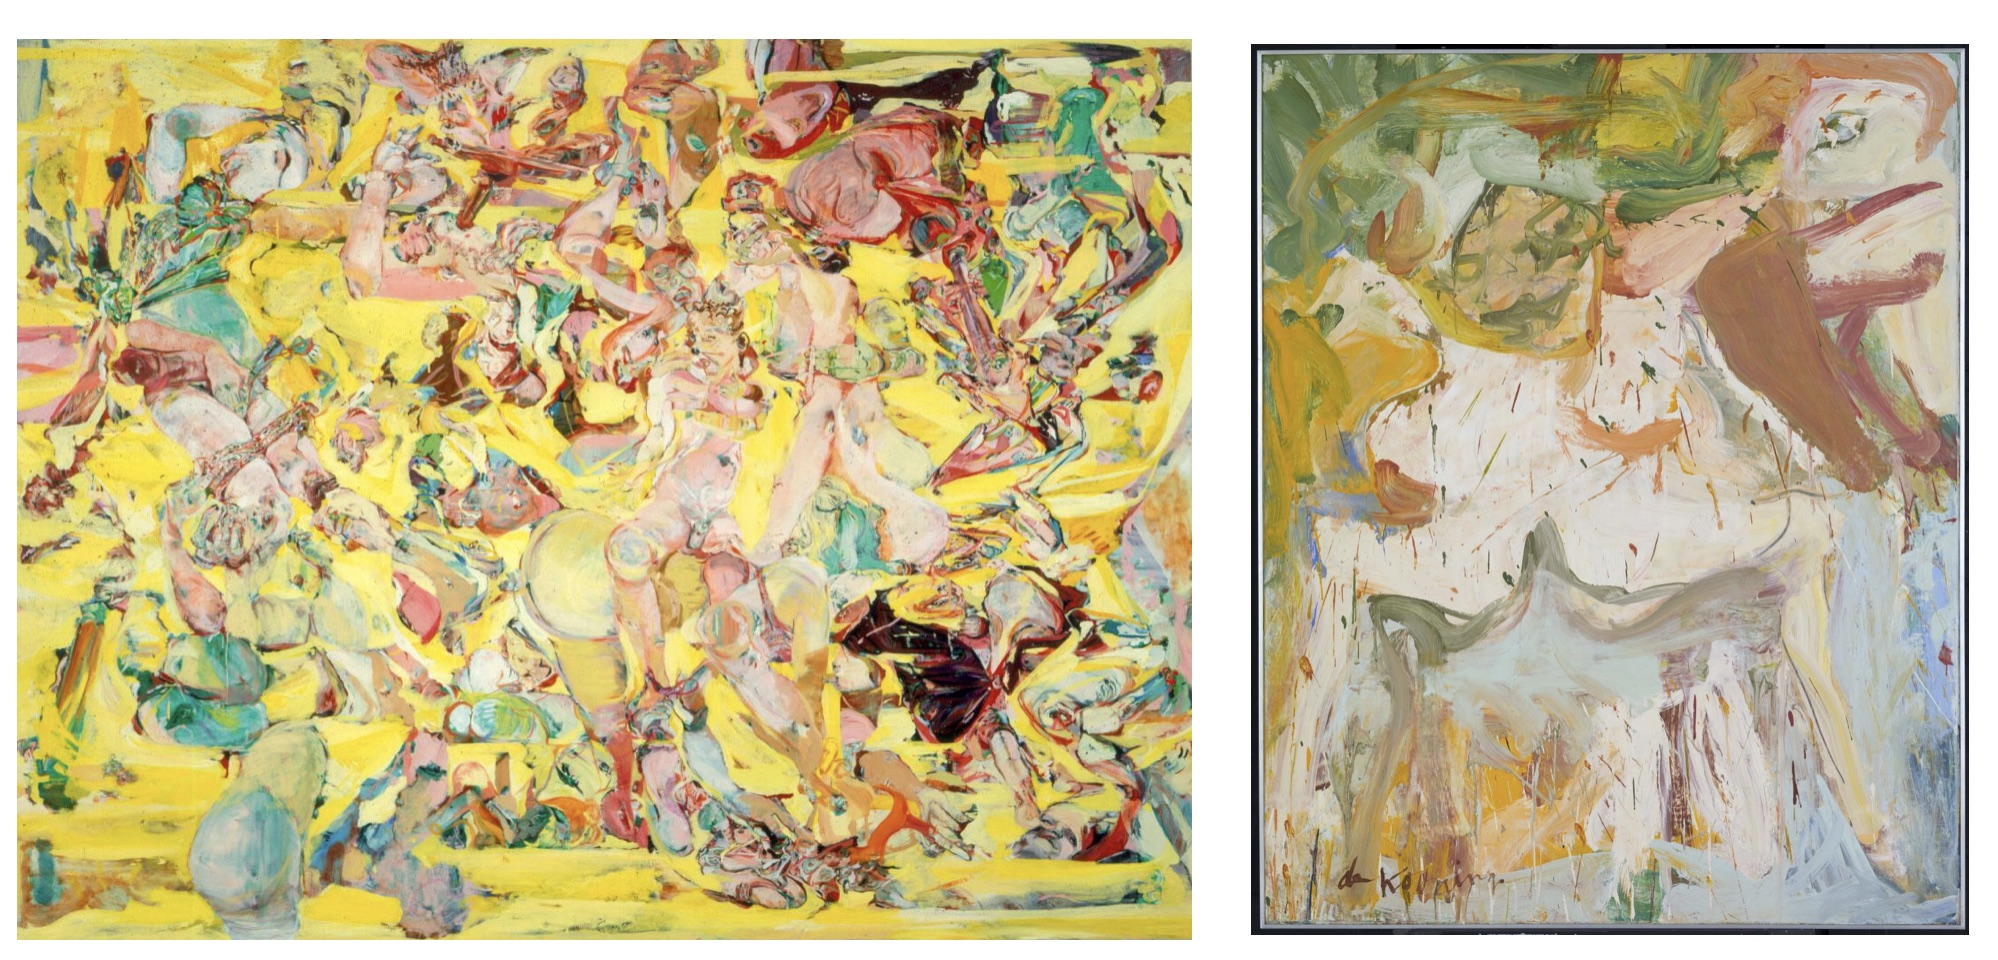 (Left) Cecily Brown, Can Can,1998. Oil on Canvas. 192.7 x 248.9cm. Courtesy of the artist. (Right) Willem de Kooning 'The Visit', 1966–7 © Willem de Kooning Revocable Trust/ARS, NY and DACS, London 2016